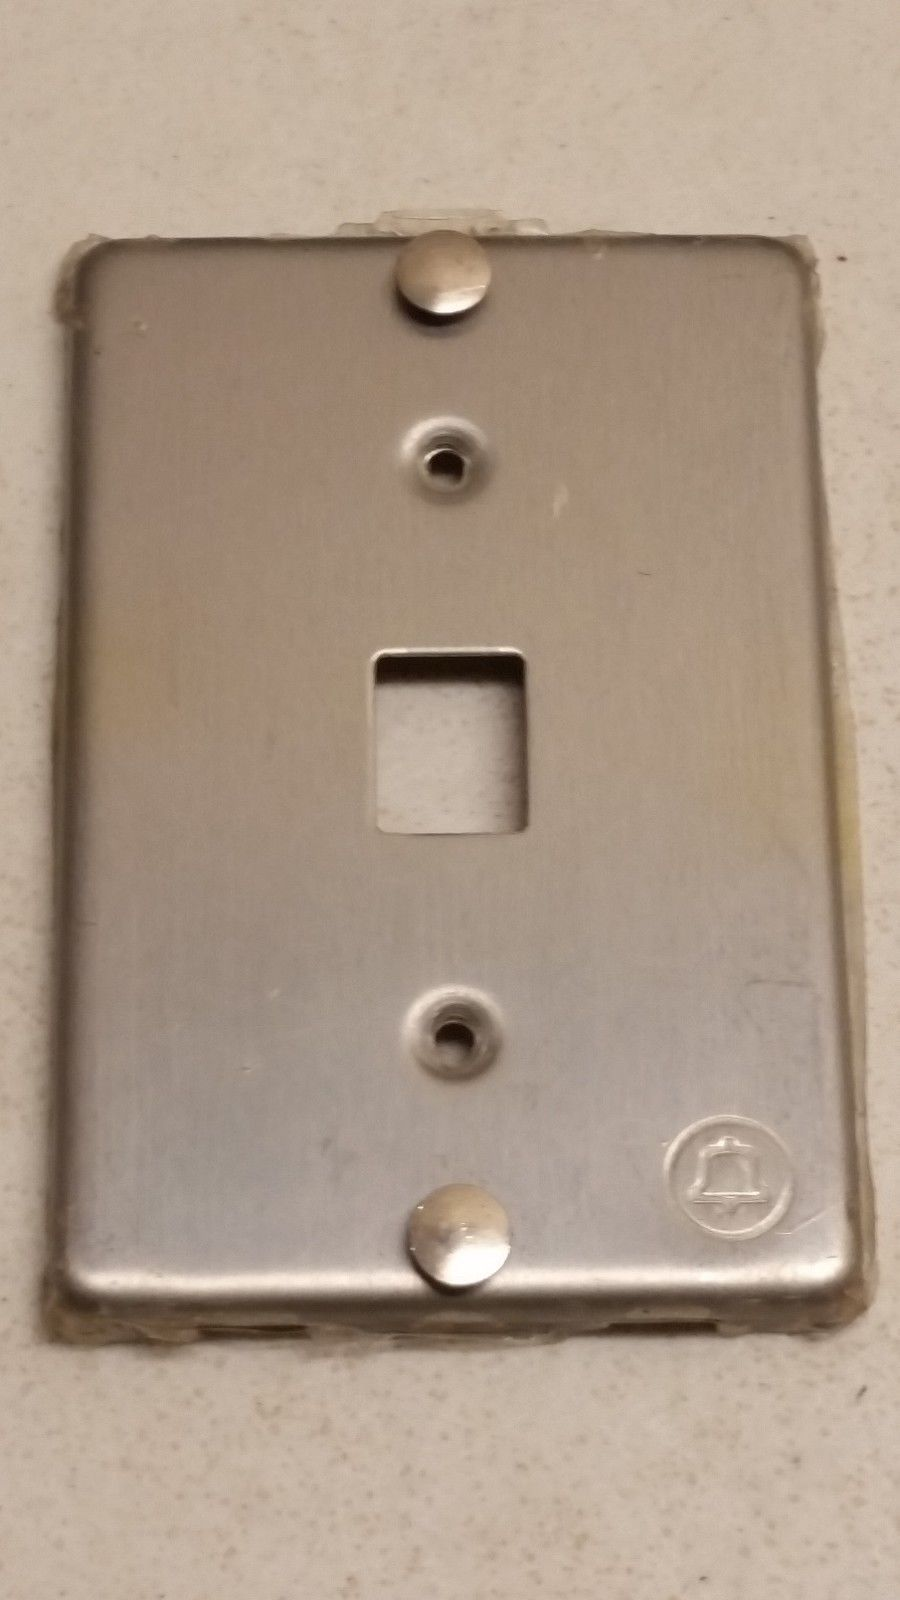 6 99 western electric 630a4 stainless wall jack face plate cover only bell [ 900 x 1600 Pixel ]